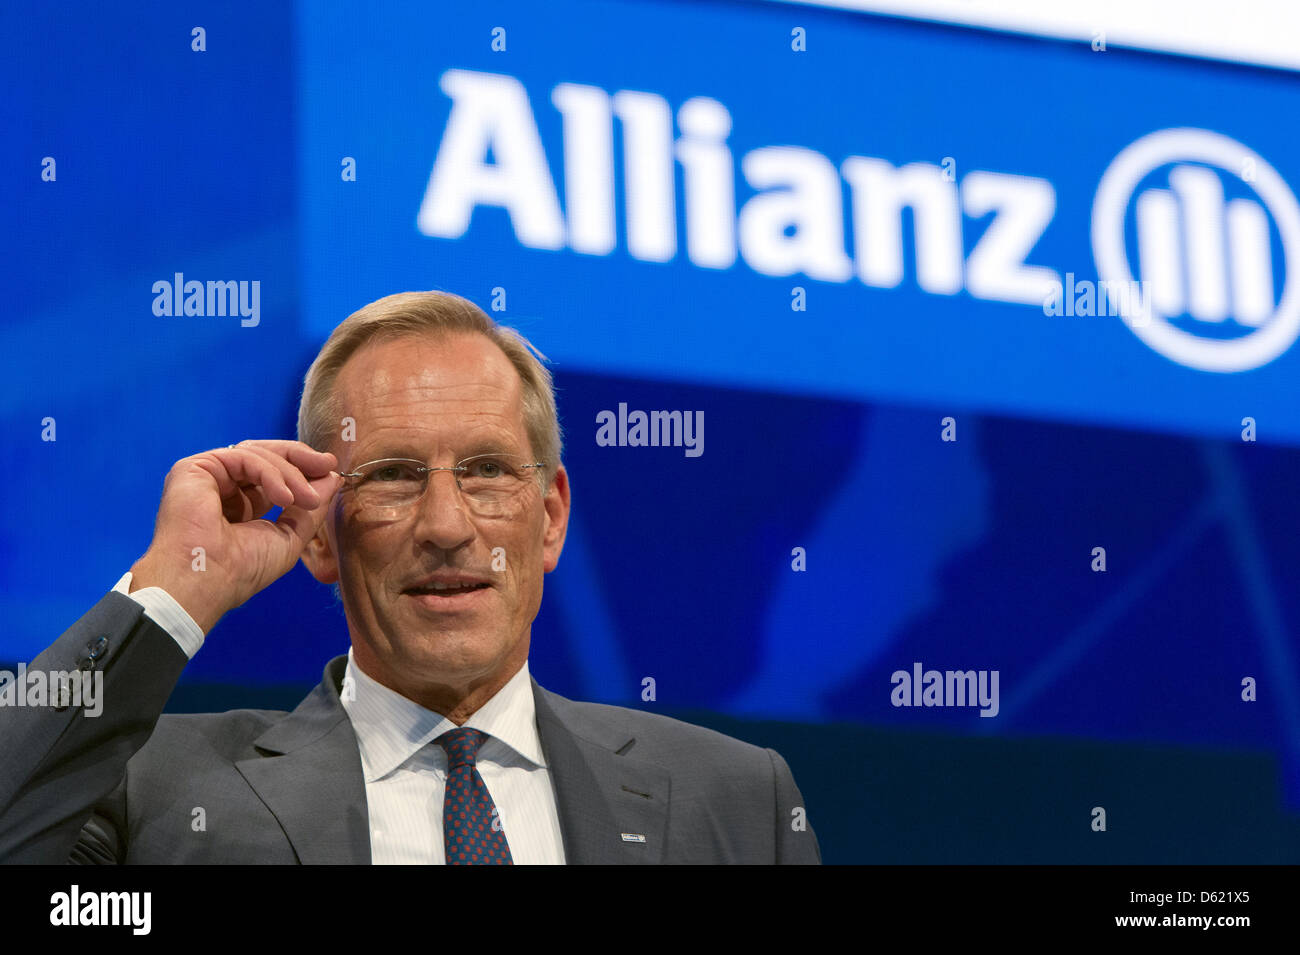 CEOof Allianz SE Michael Diekmann gestures at the general meeting of shareholders at the Olympic Hall in Munich, Germany, 09 May 2012. After a rather bad last year, Allianz can report a good start for 2012. Photo: PETER KNEFFEL Stock Photo